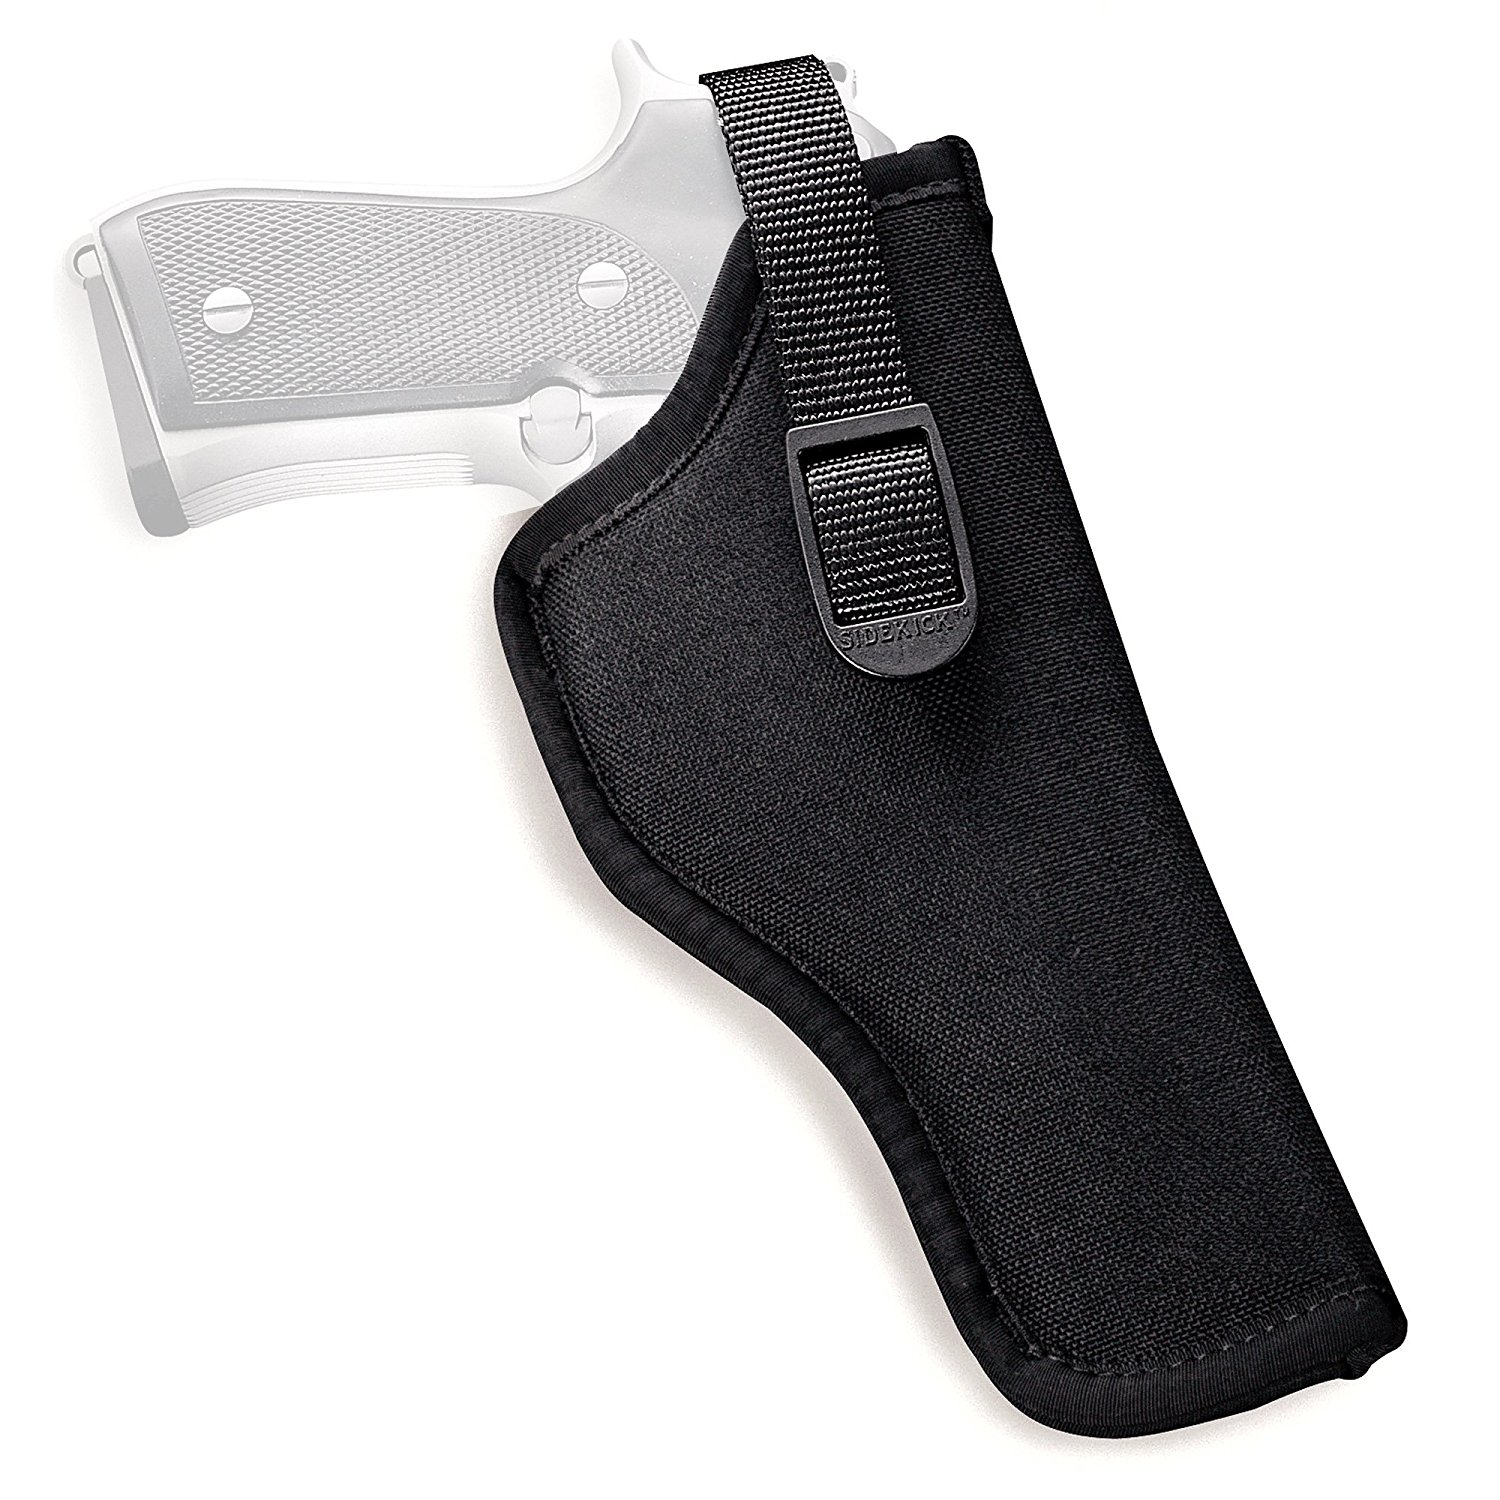 Uncle Mike's Kodra Nylon Sidekick Hip Holster